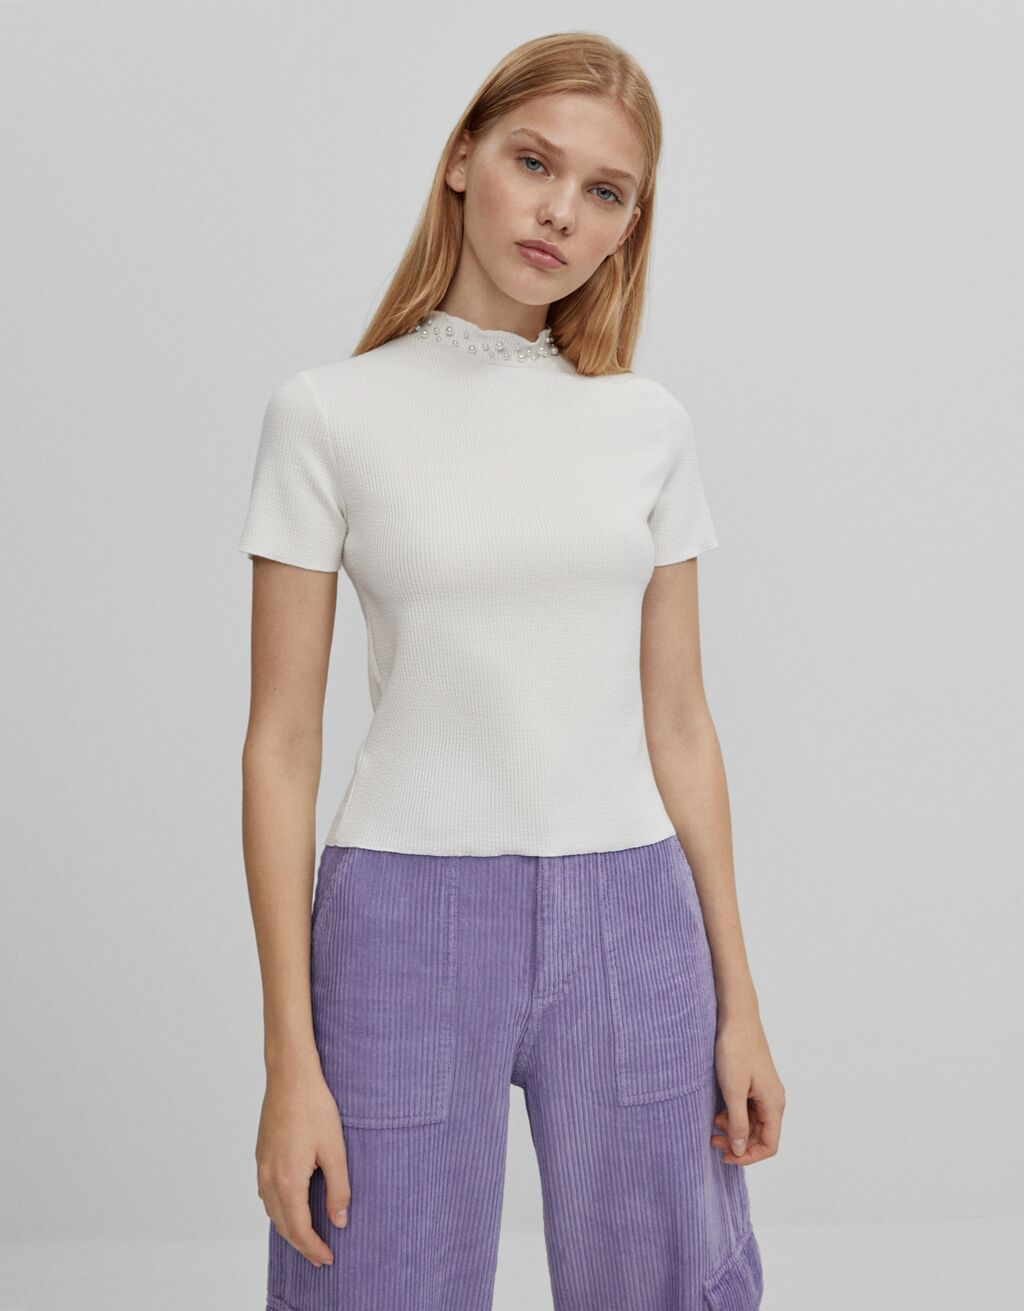 T-shirt with pearly neckline